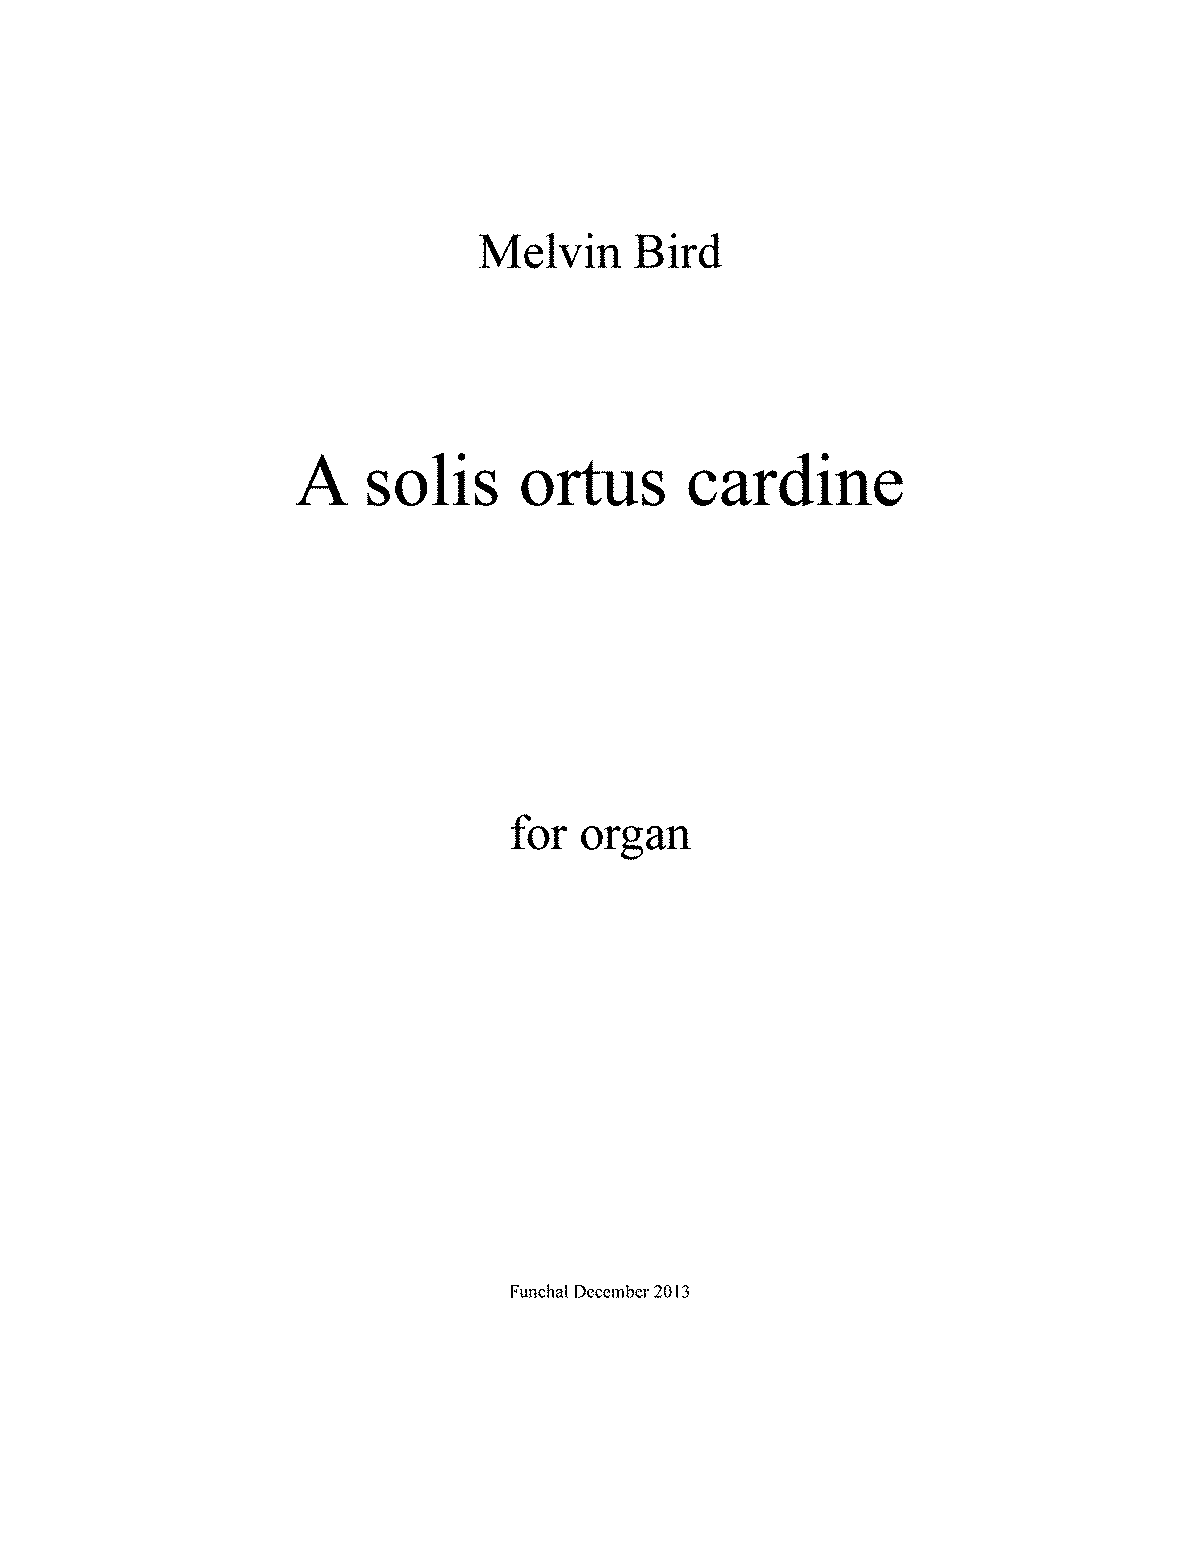 PMLP615011-cardineortisfororgan(PDFJune6th).pdf